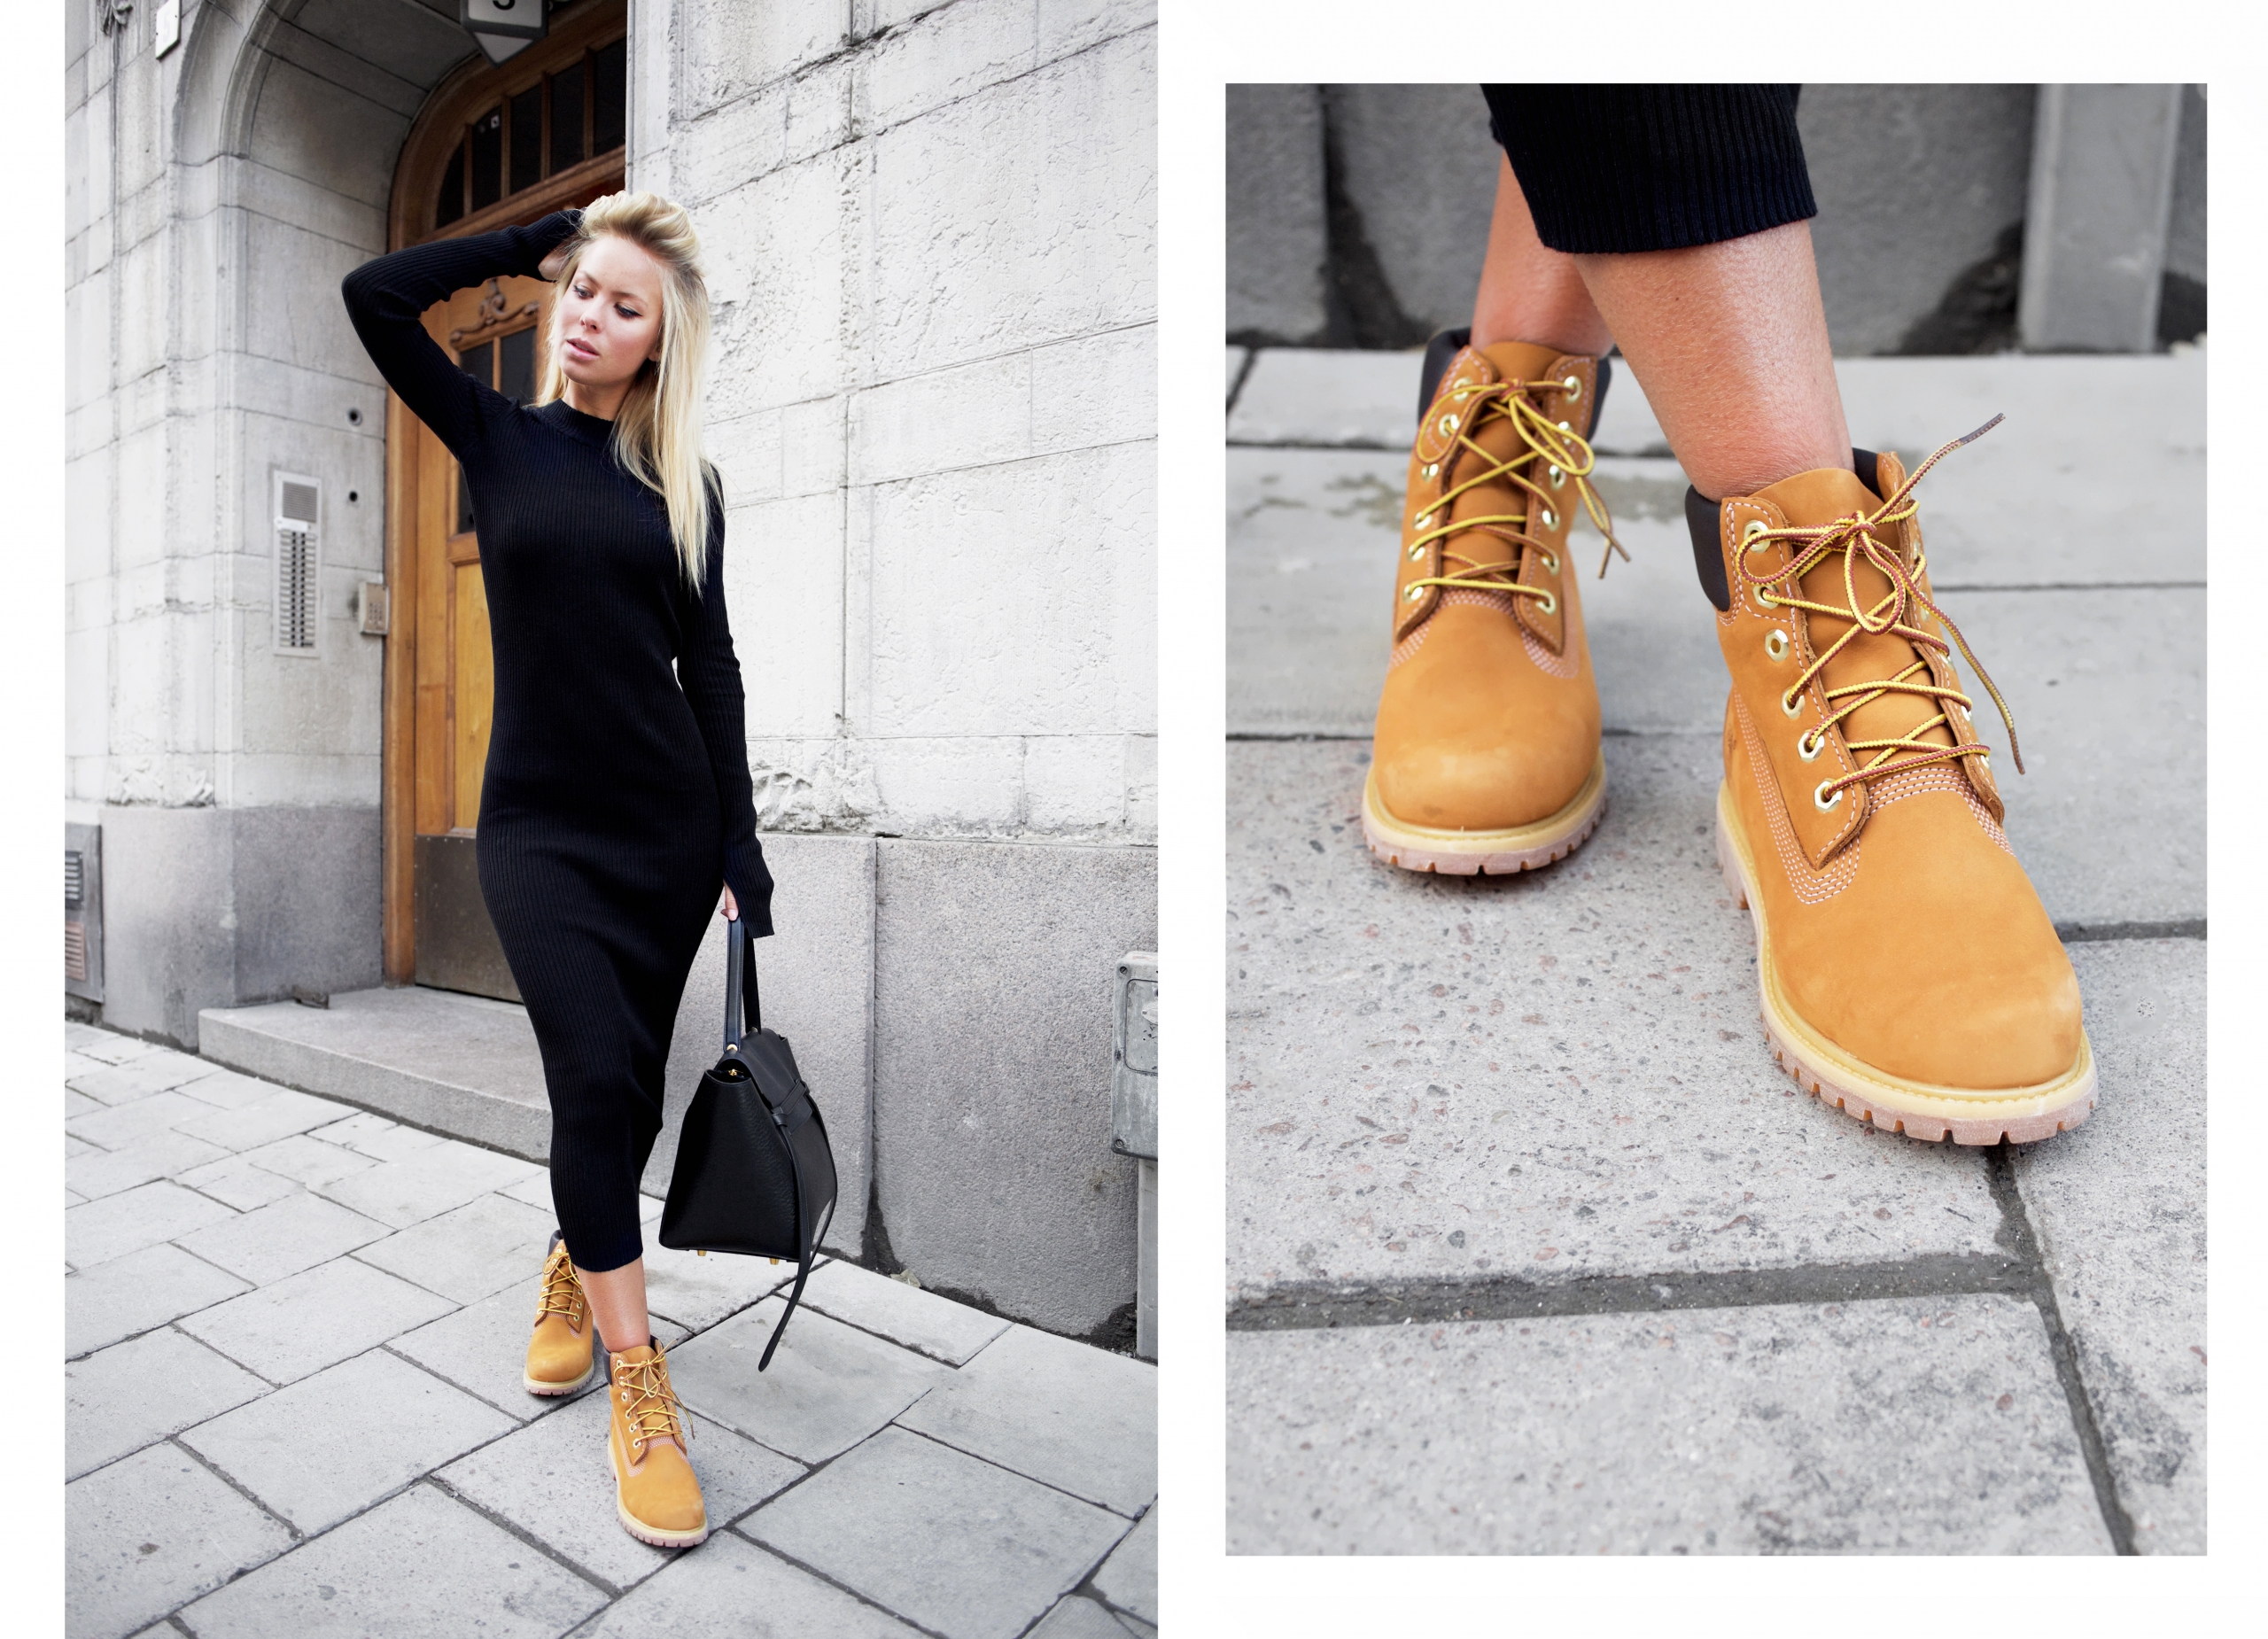 comment mettre timberland femme